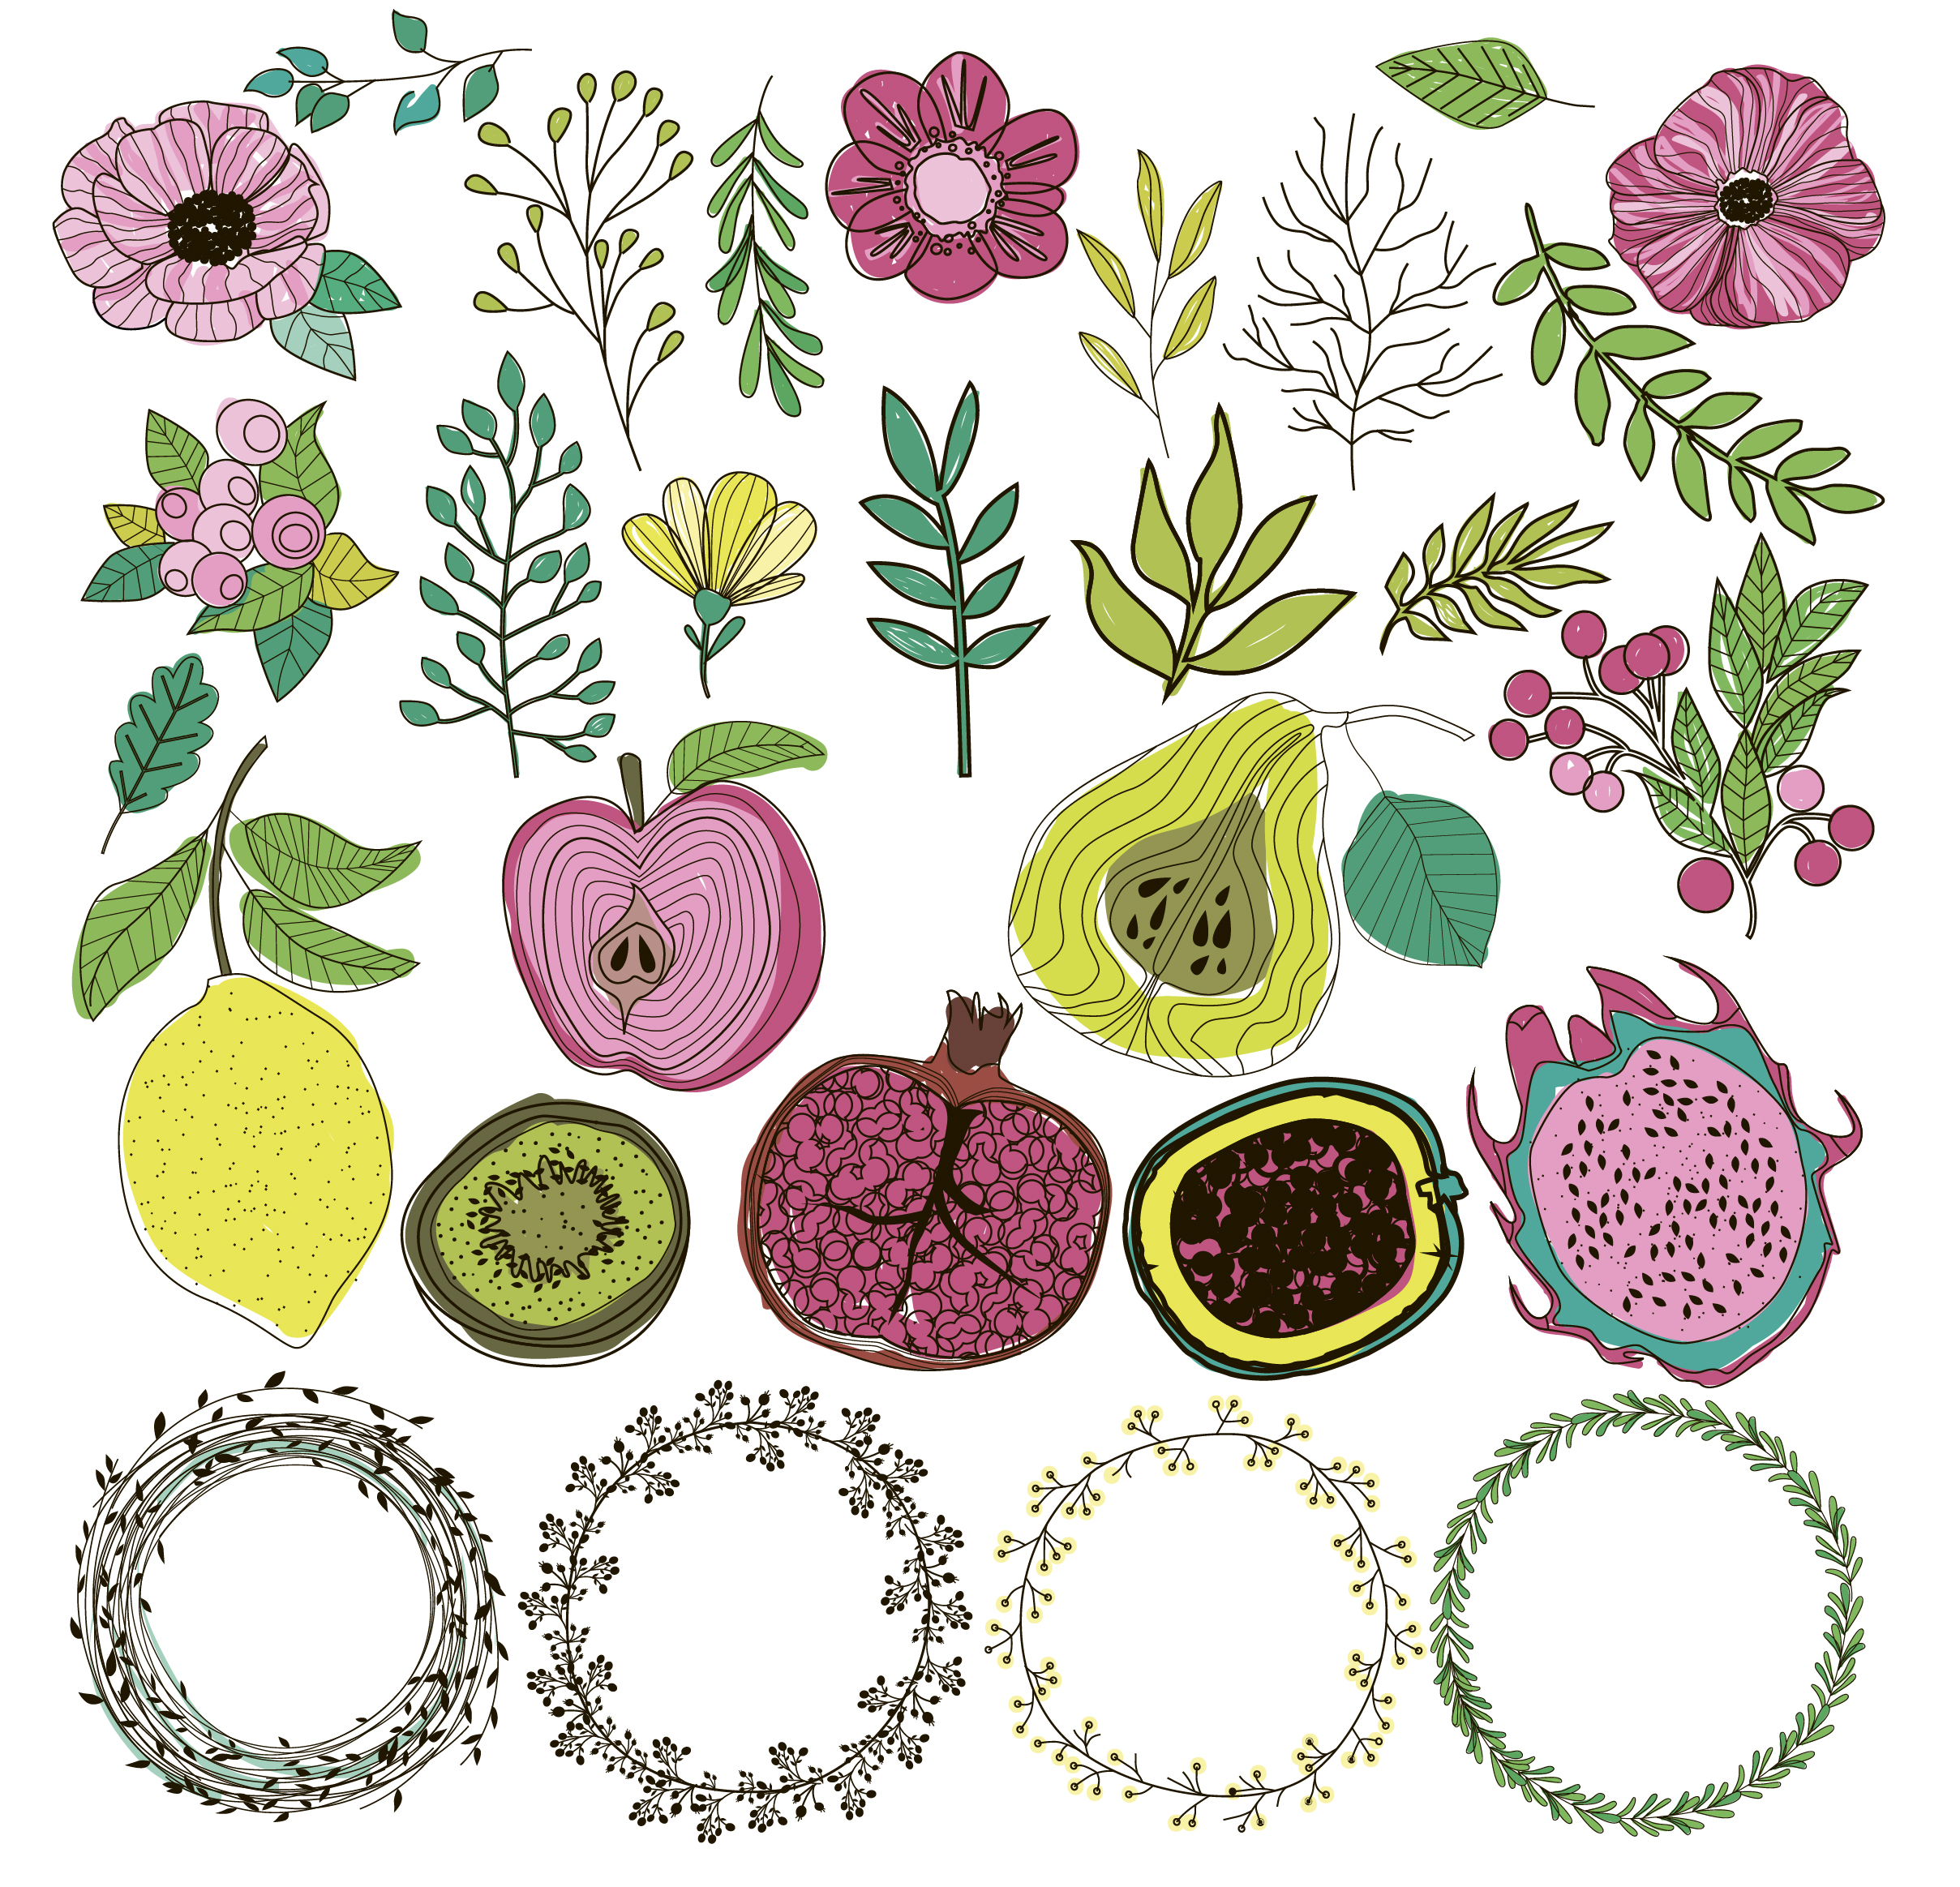 Botanical logos & illustrations example image 3